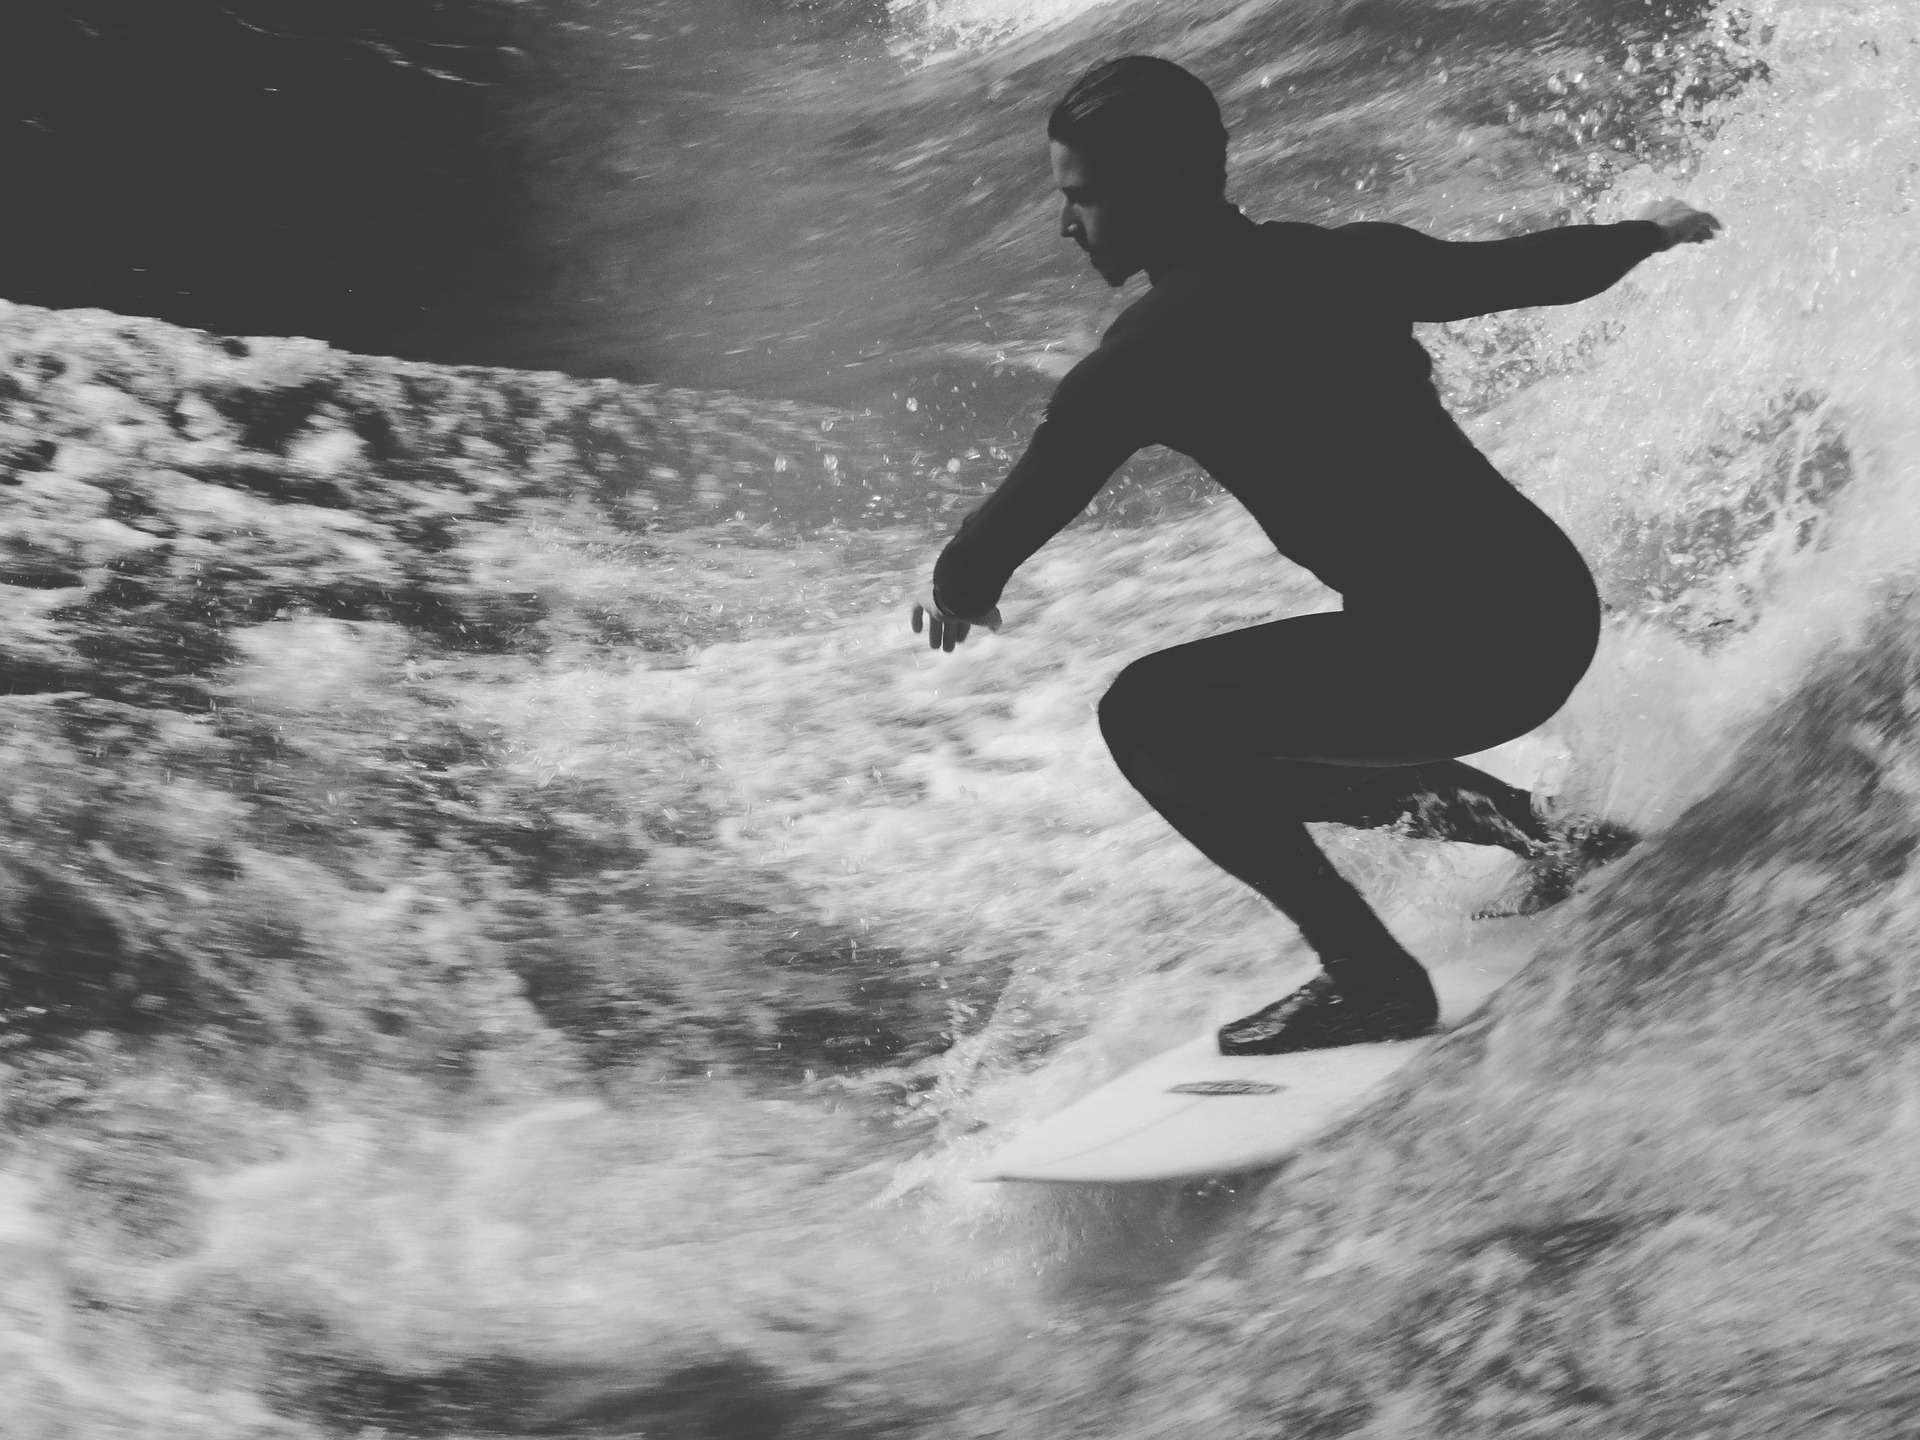 yoga and surfing are a natural pair